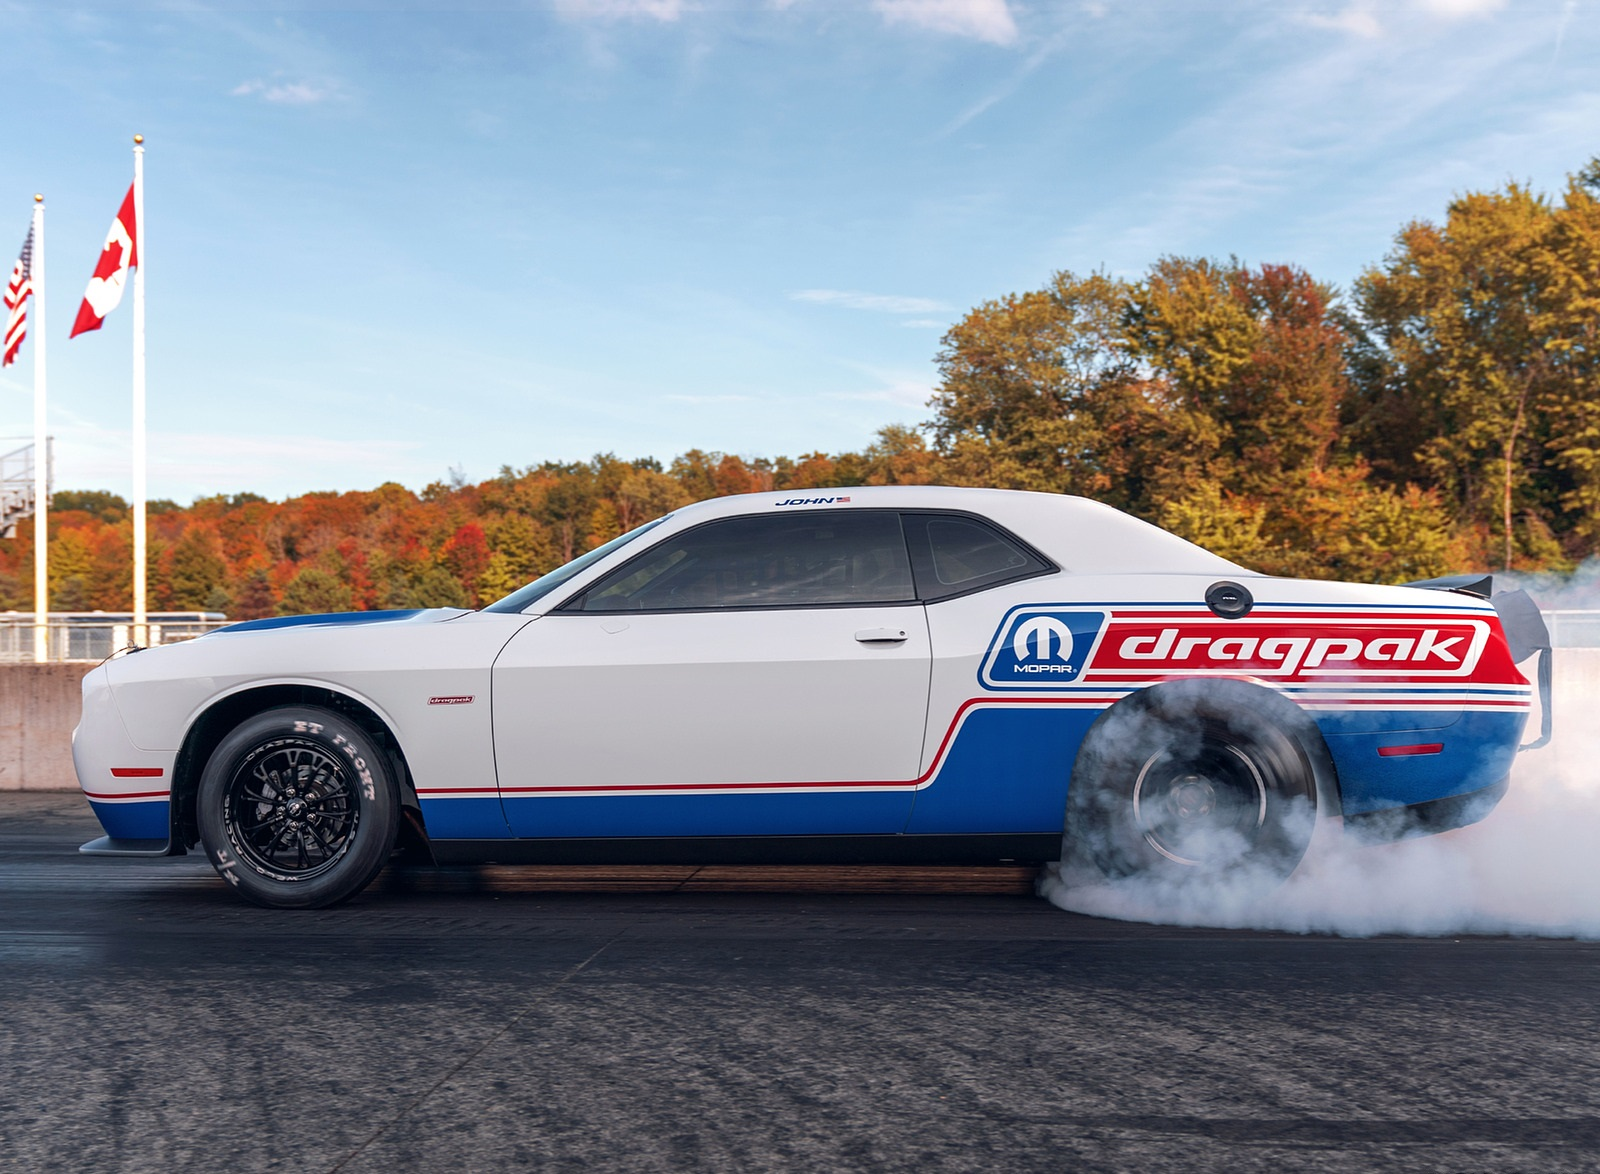 2021 Dodge Challenger Mopar Drag Pak Burnout Wallpapers  (6)